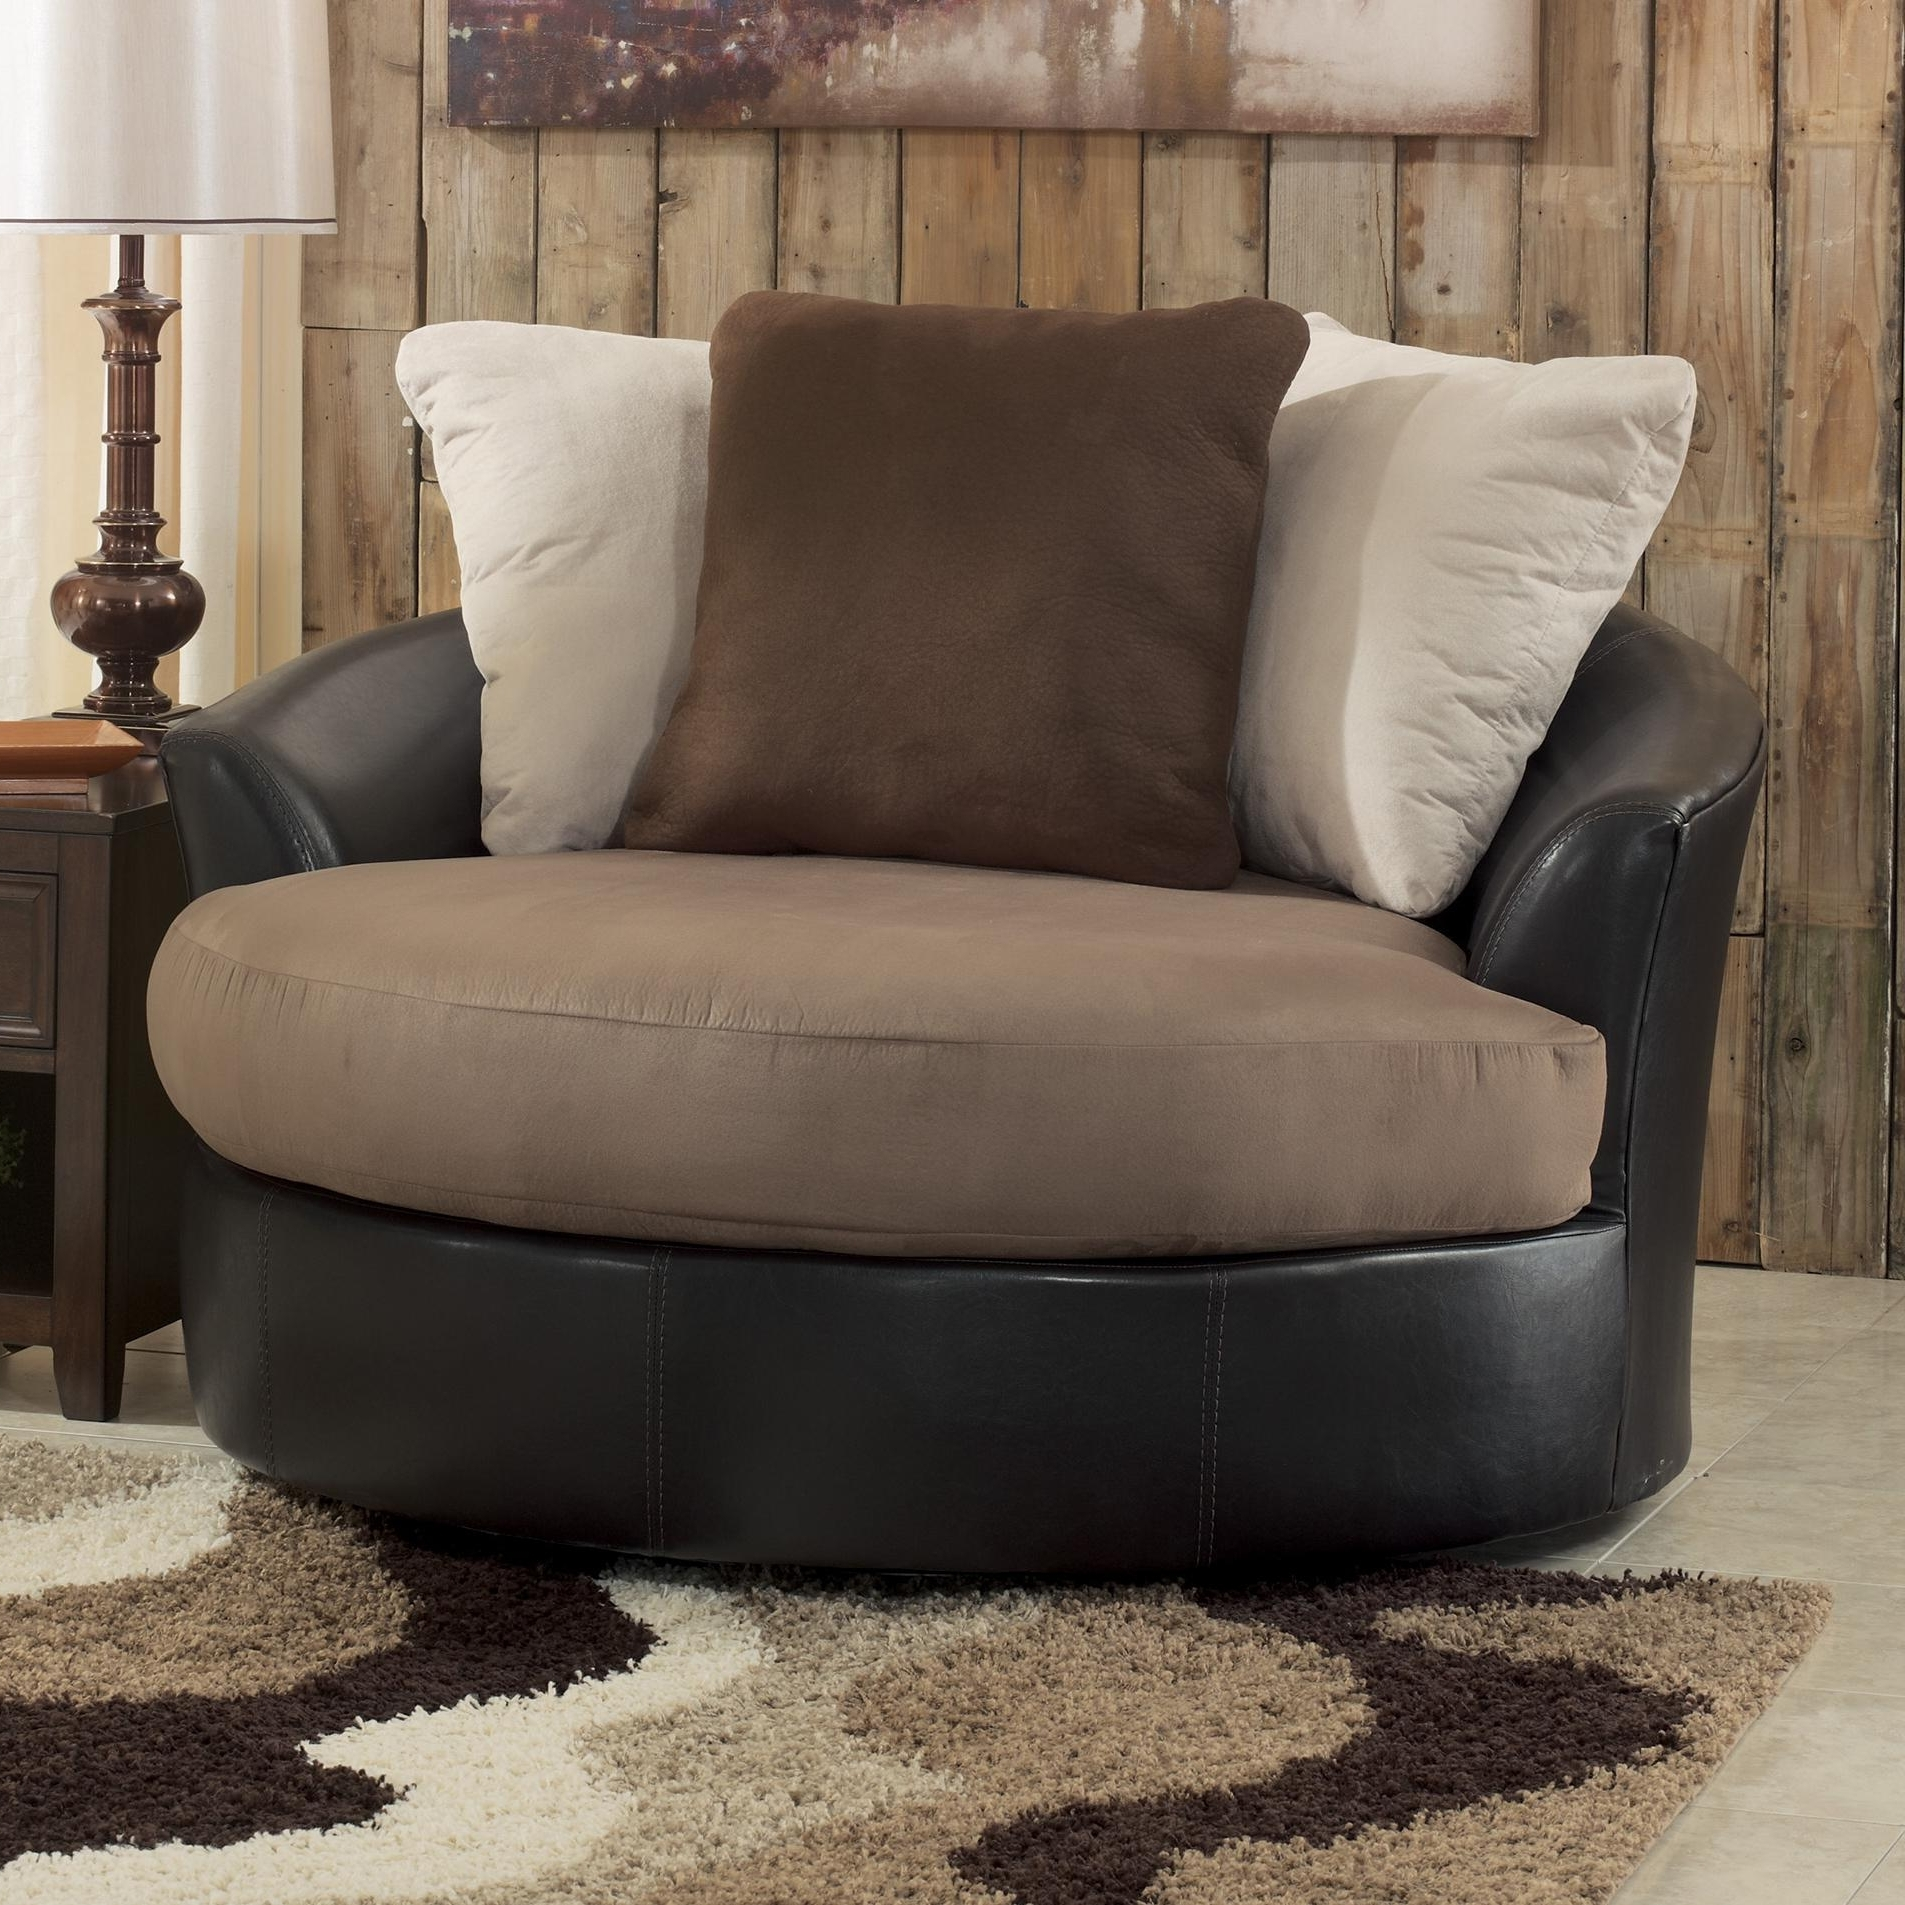 Newest Oversized Sofa Chairs Inside Sofa : Excellent Round Sofa Chair Living Room Furniture Harveys (View 16 of 20)